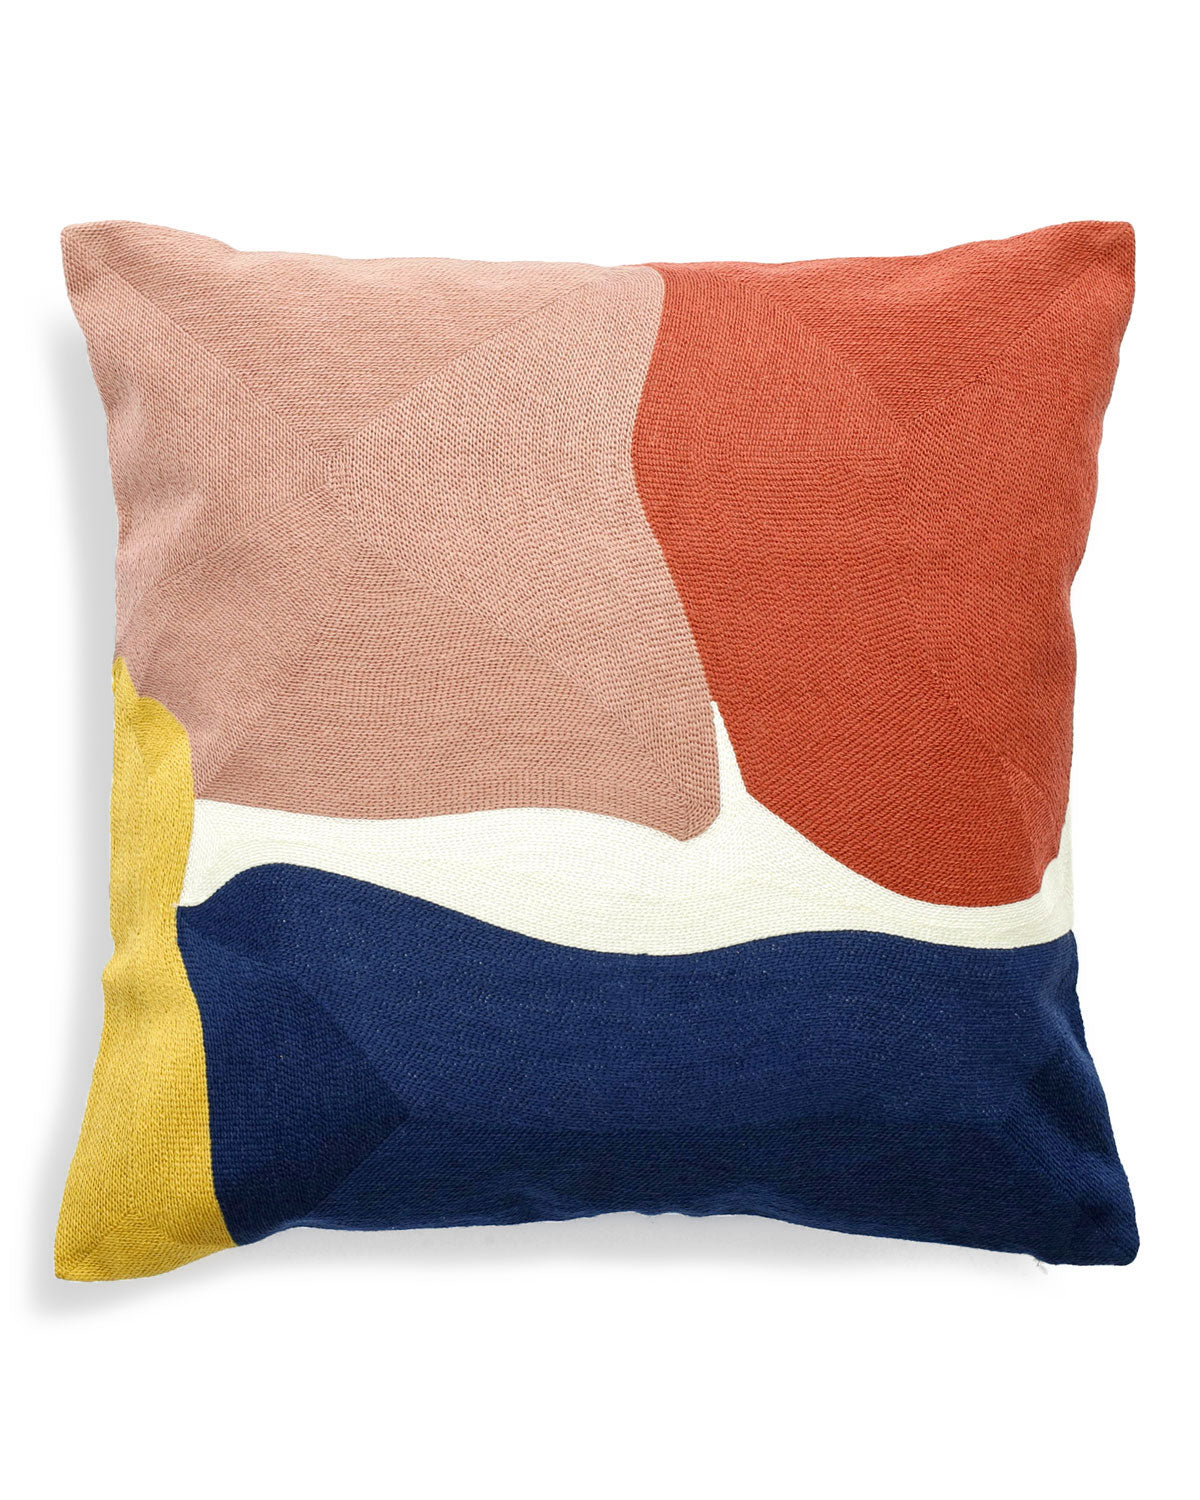 Calico Pillow Cover